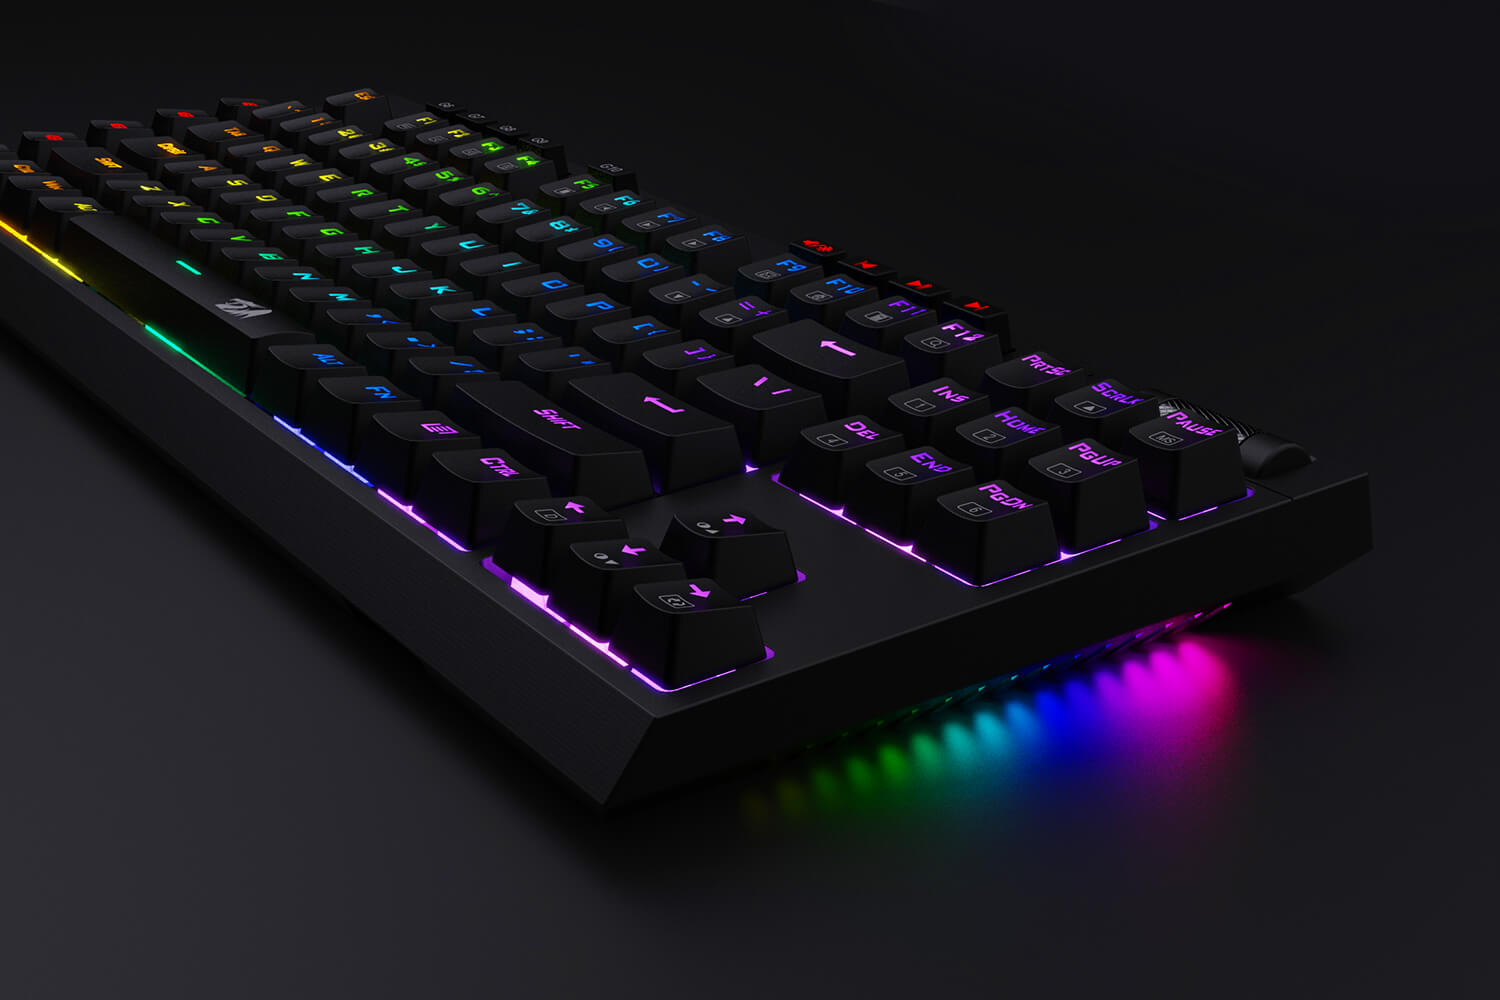 redragon wireless mechanical keyboard